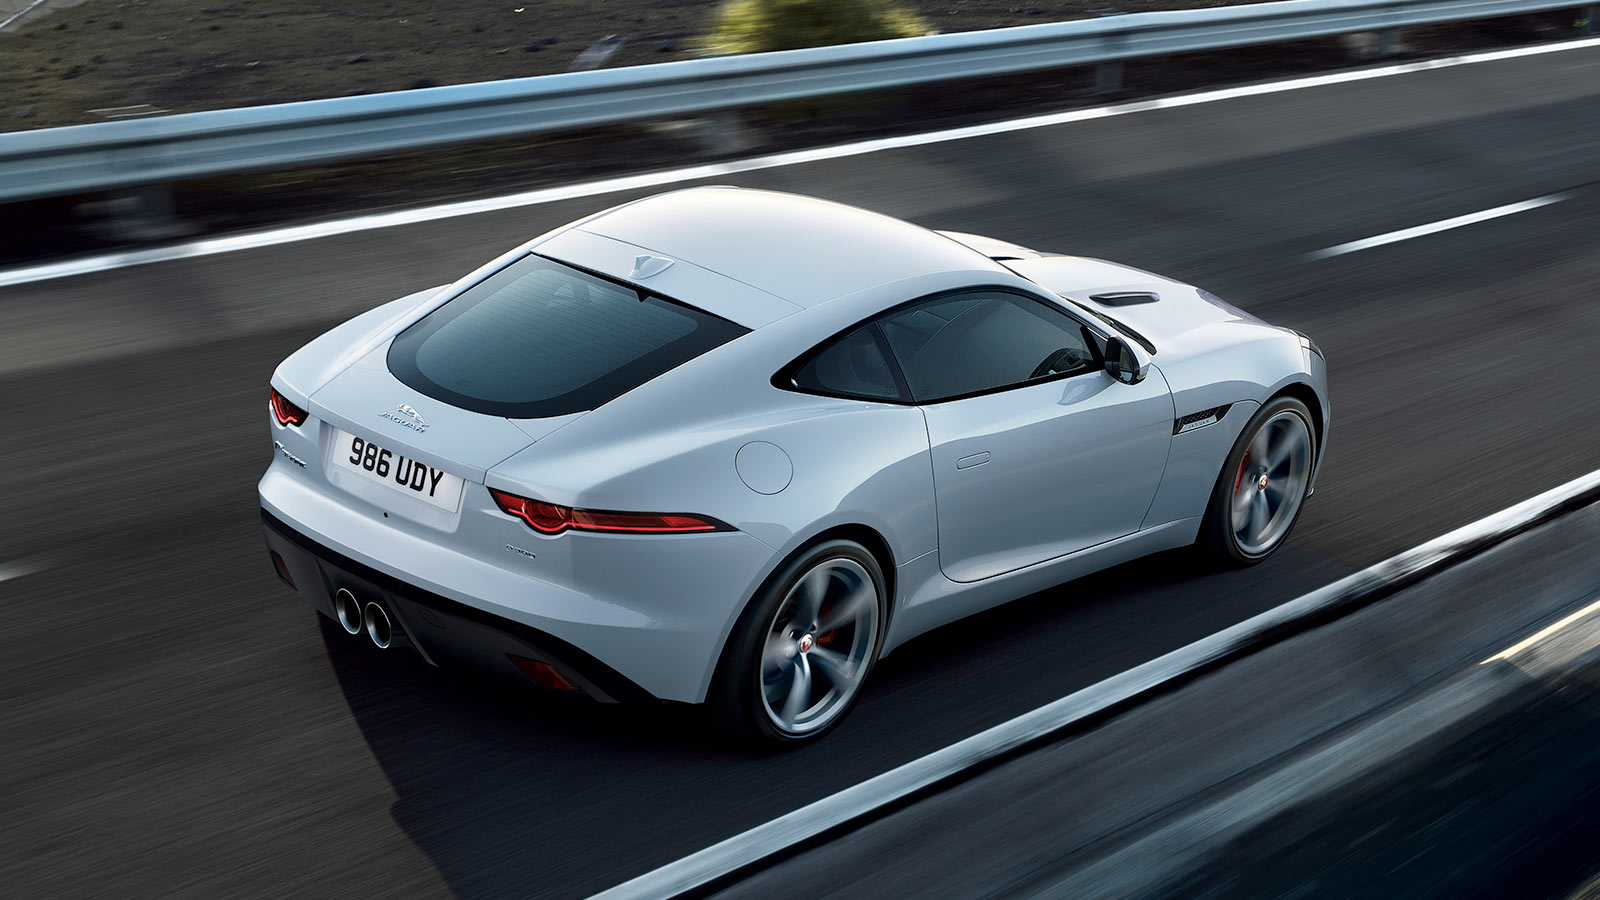 Jaguar F-TYPE 3.0 (380) S/C V6 Chequered Flag AWD SPECIAL EDITIONS image 2